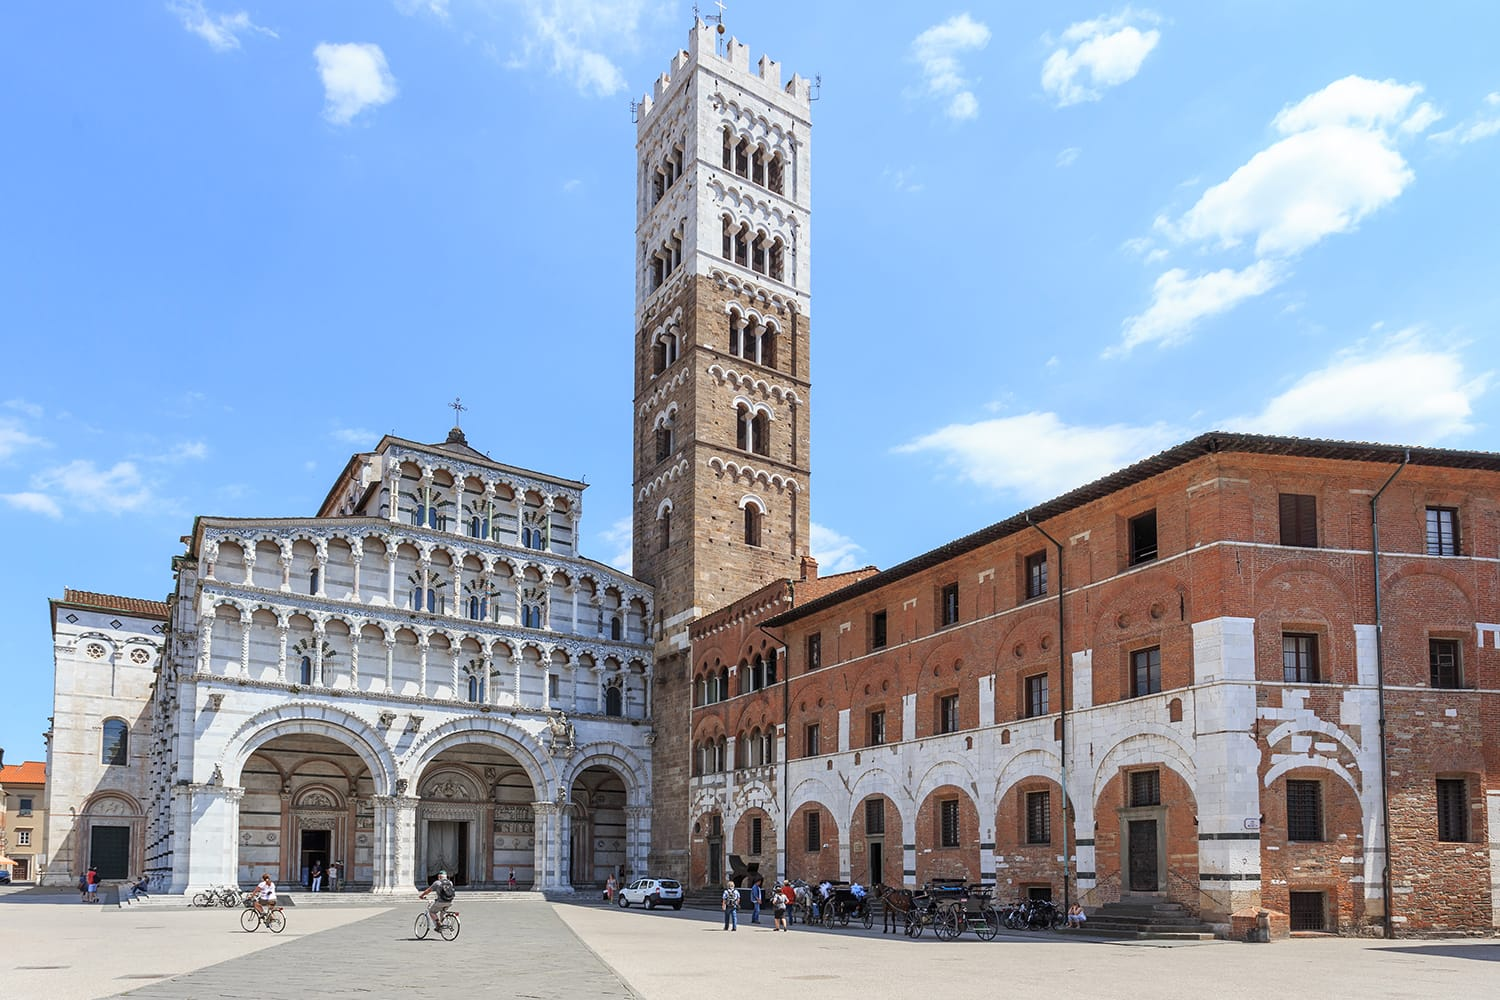 Romanesque Facade and bell tower of St. Martin Cathedral in Lucca, Tuscany. It contains most precious relic in Lucca, Holy Face of Lucca (Italian: Volto Santo di Lucca)